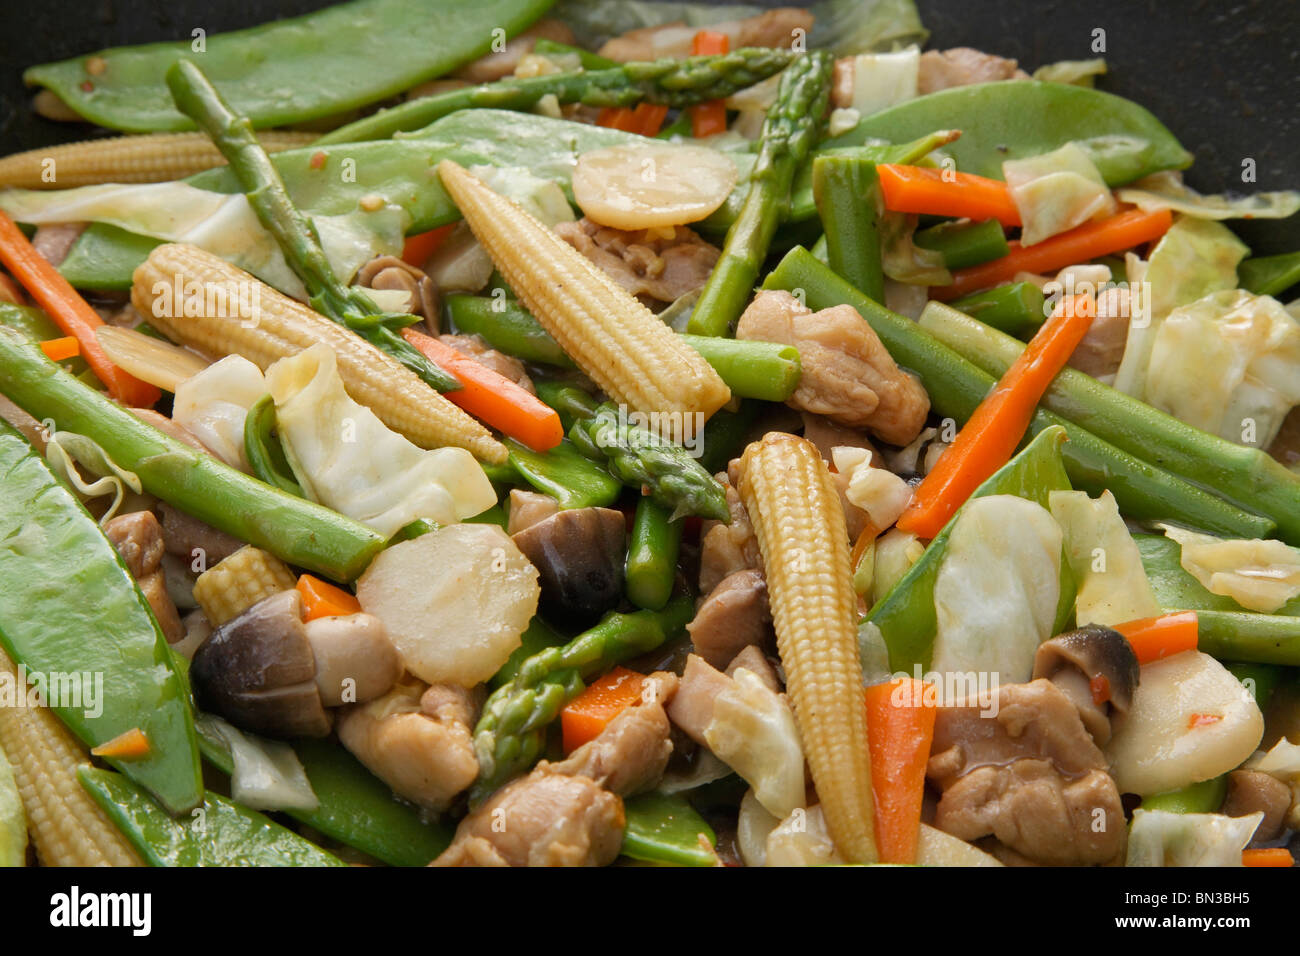 Thai chicken and vegetable stir fry stock photos thai chicken and chinese vegetable and chicken stir fry in wok close up stock image forumfinder Image collections